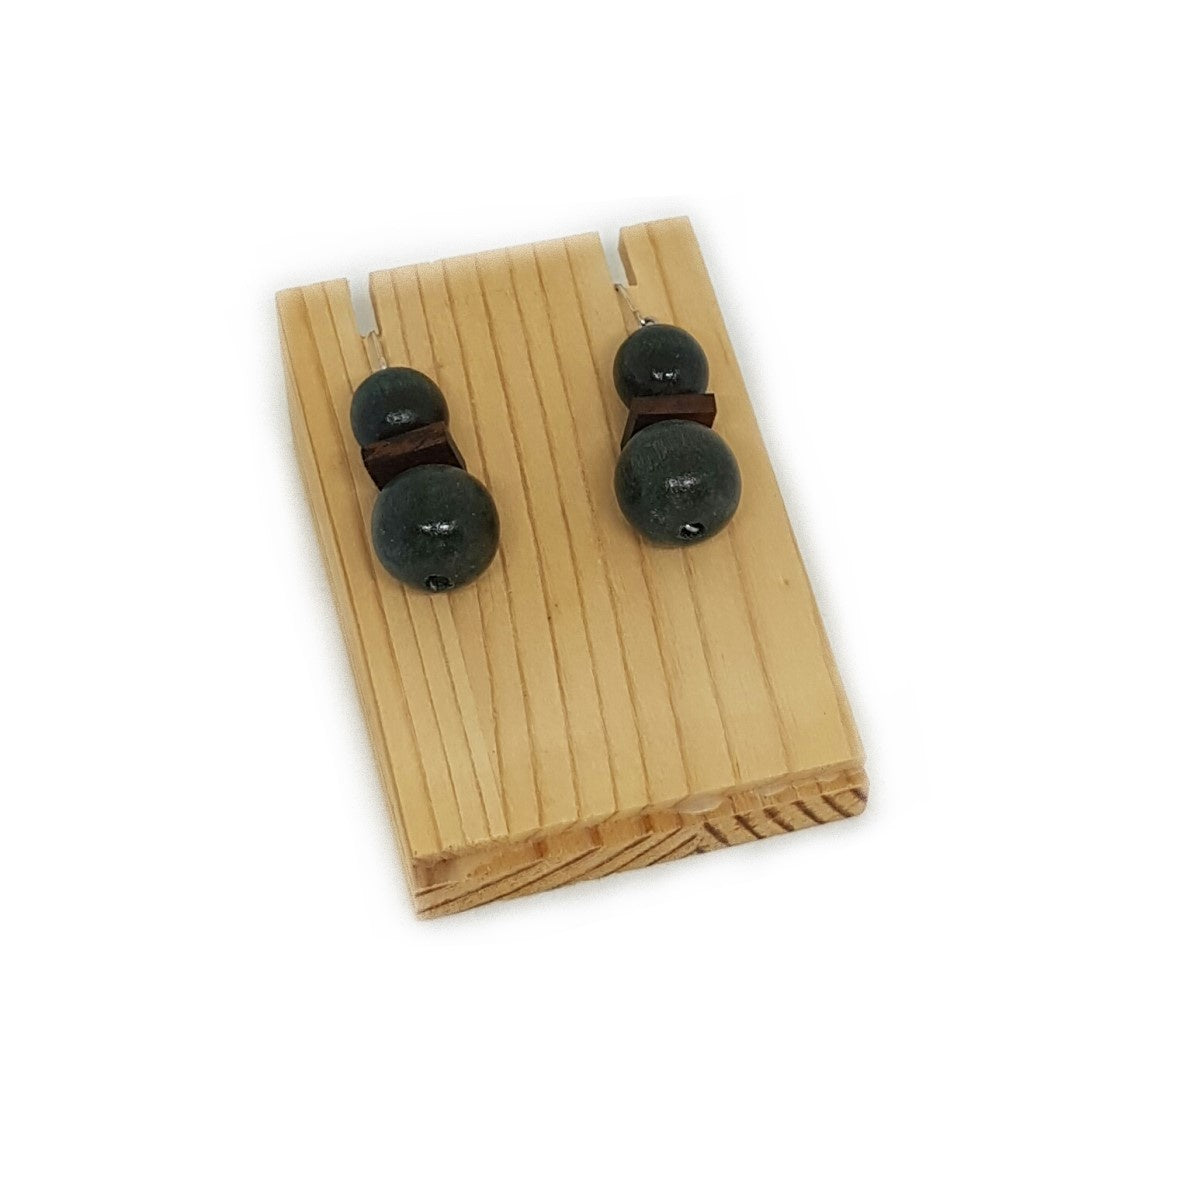 Wooden Earring Display